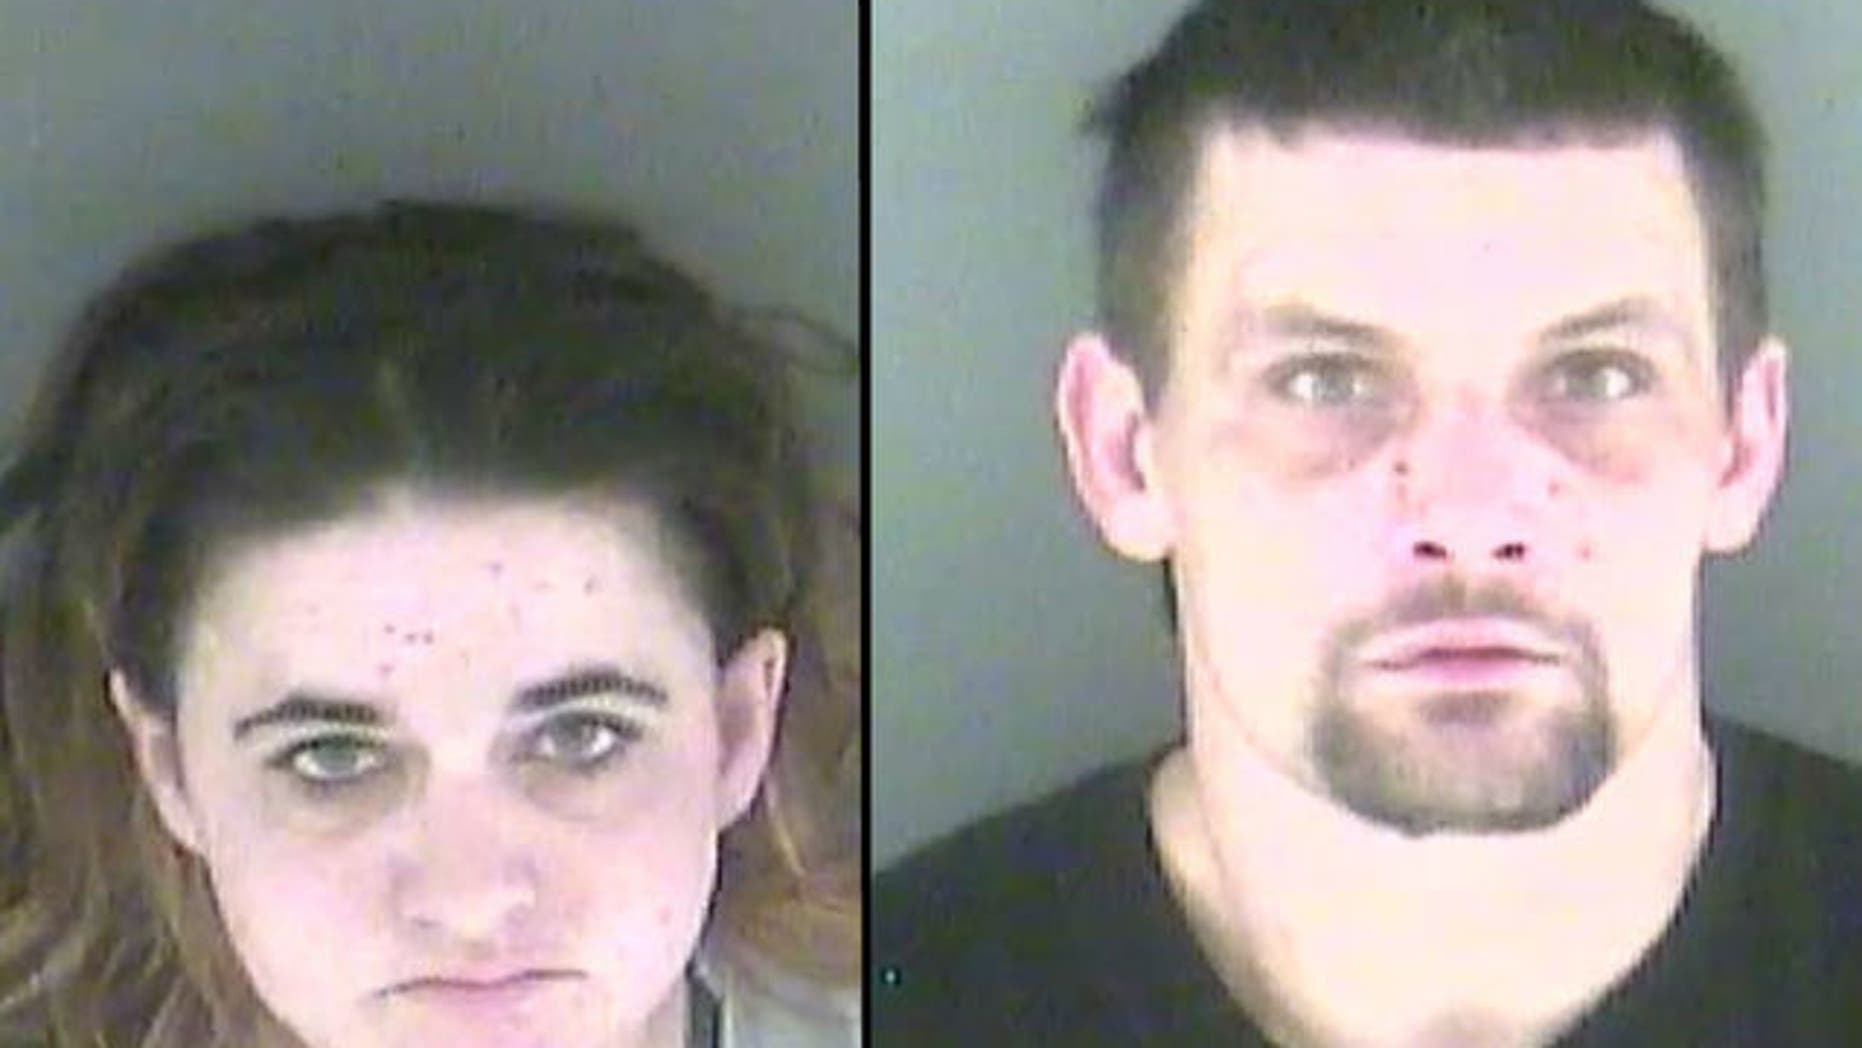 Sasha Fletcher, 31, and her boyfriend, Joshua Parson, 34, were arrested and accused of using heroin while on the job.